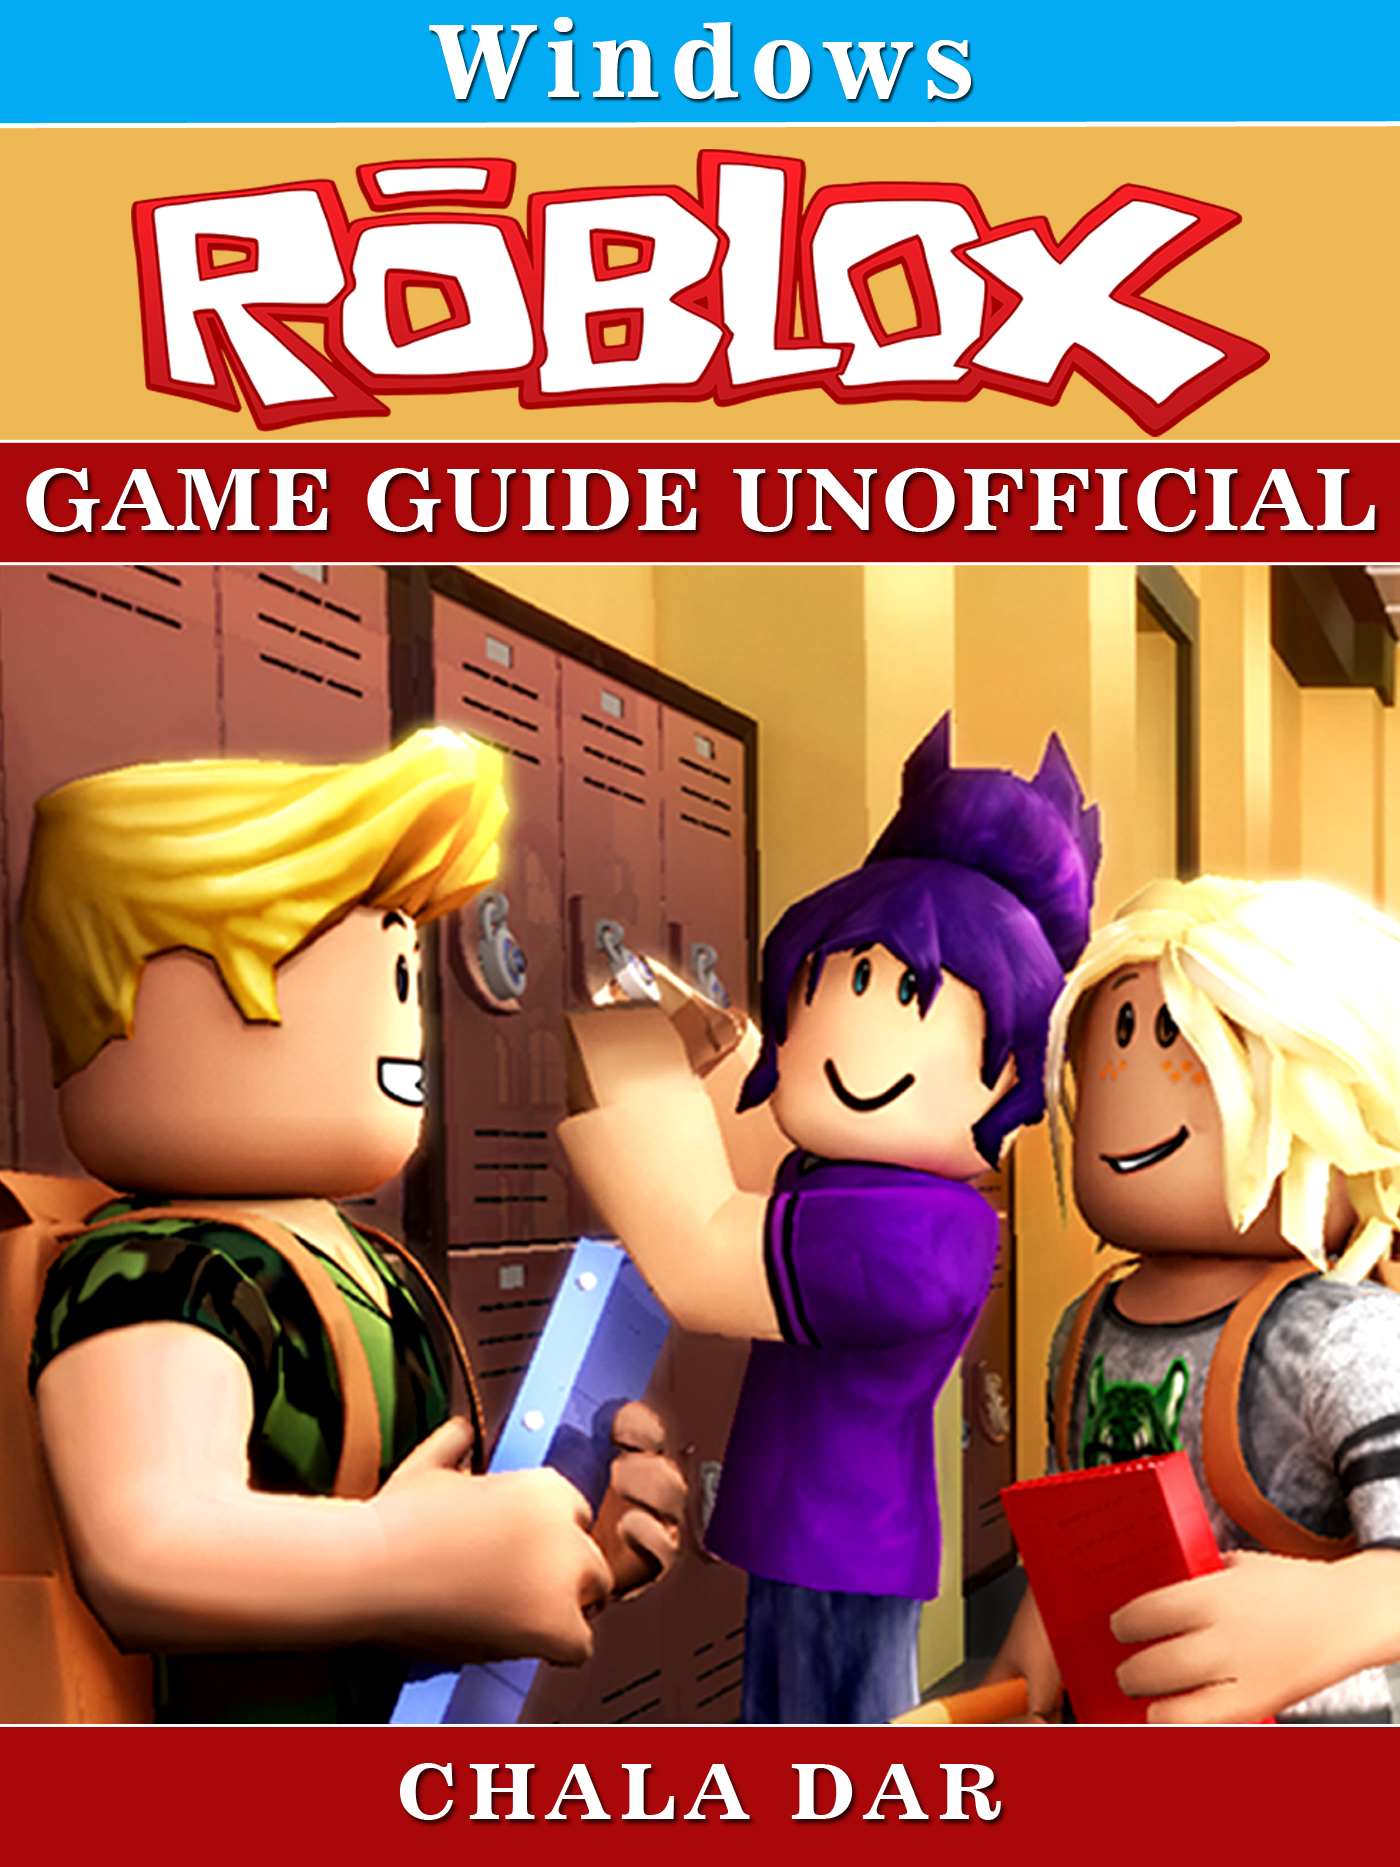 Roblox Windows Game Guide Unofficial